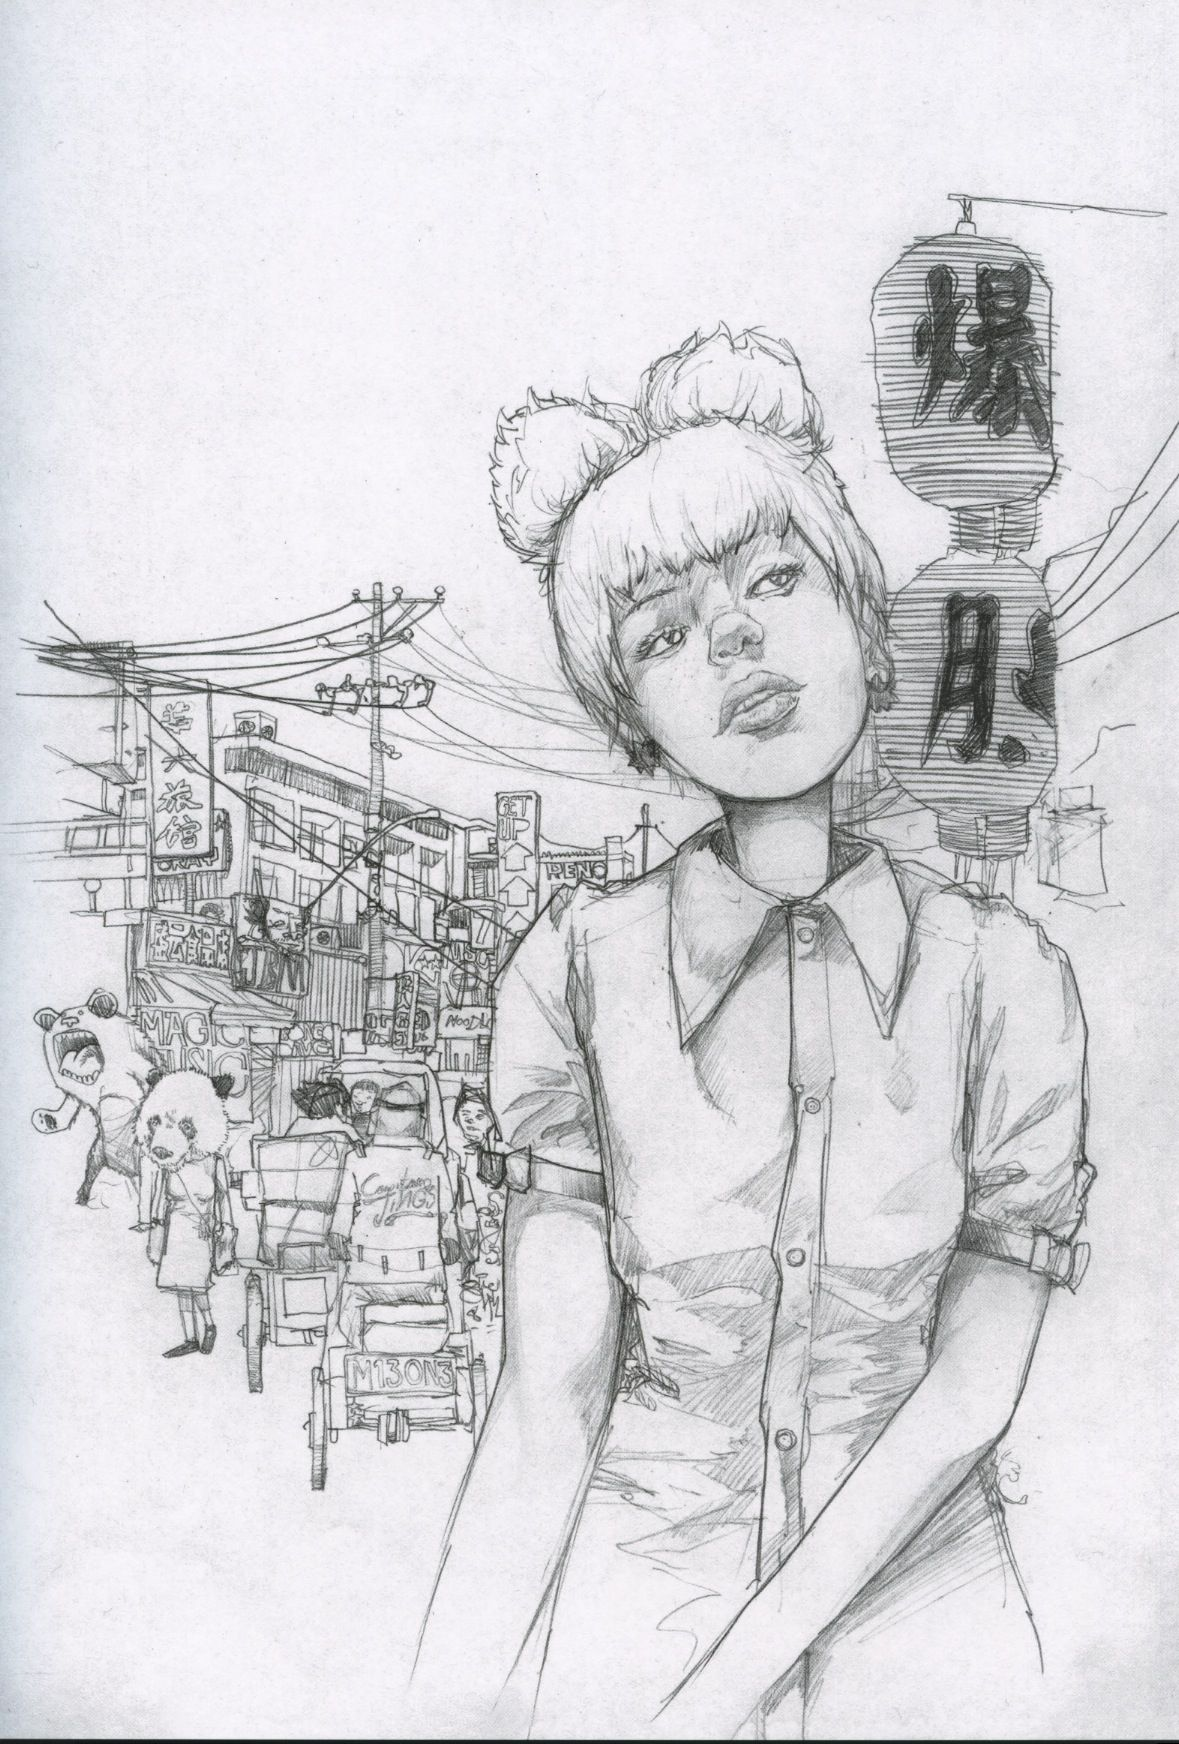 Pin By Chris Shopland On Sketchbook Inspiration Sketchbook Inspiration Sketch Book Illustration Art